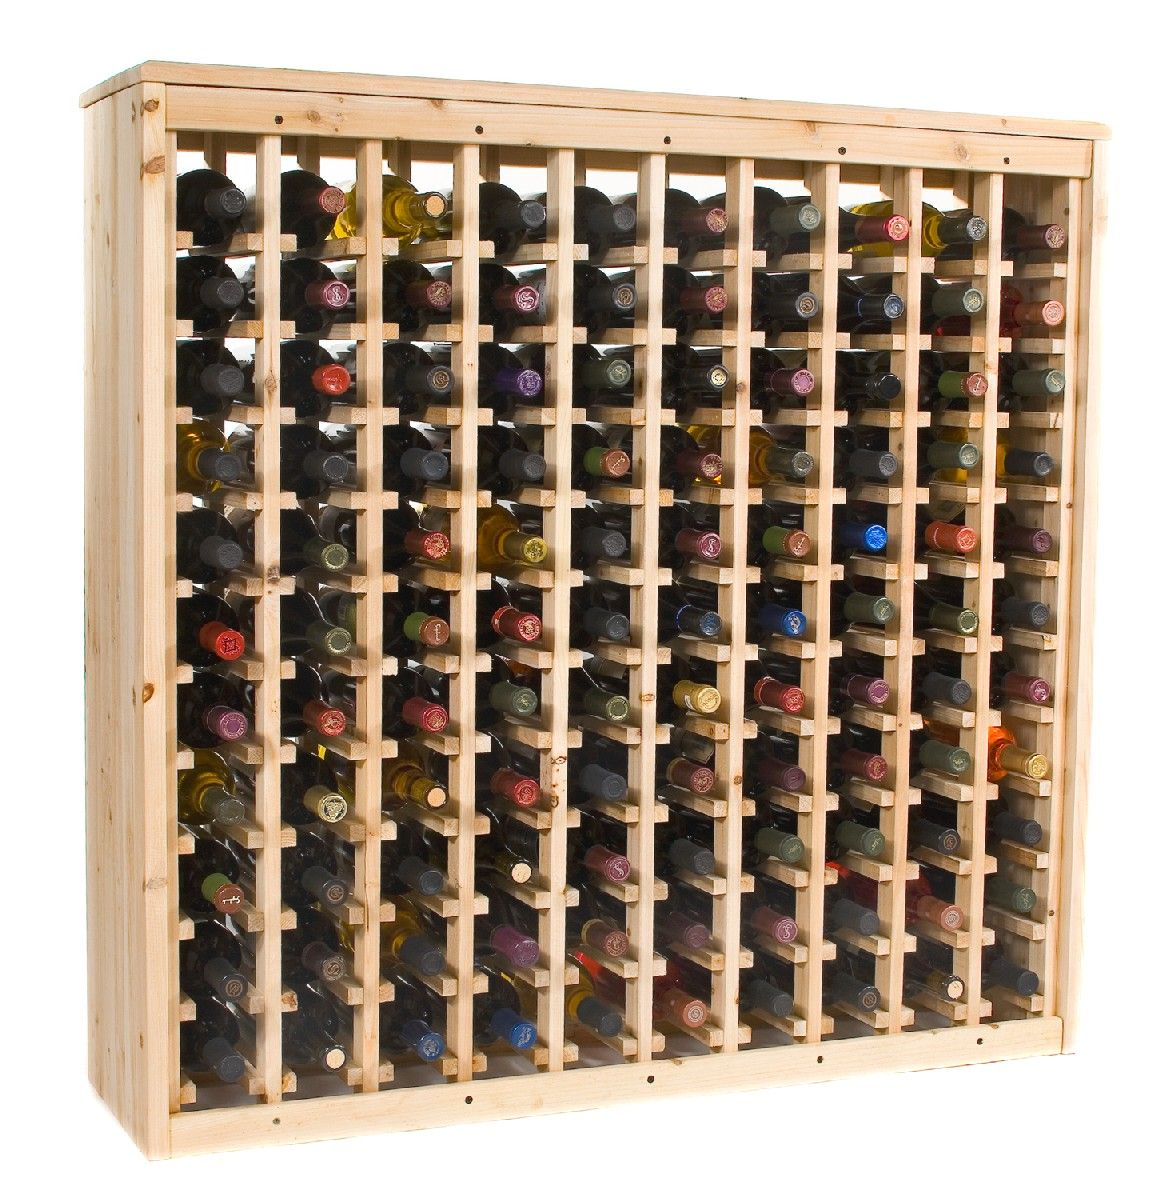 Design Building A Wine Rack simple wine rack plans free download diy you ll need six cross rails and end panels homemade racks nice design easy build thanks for the gre